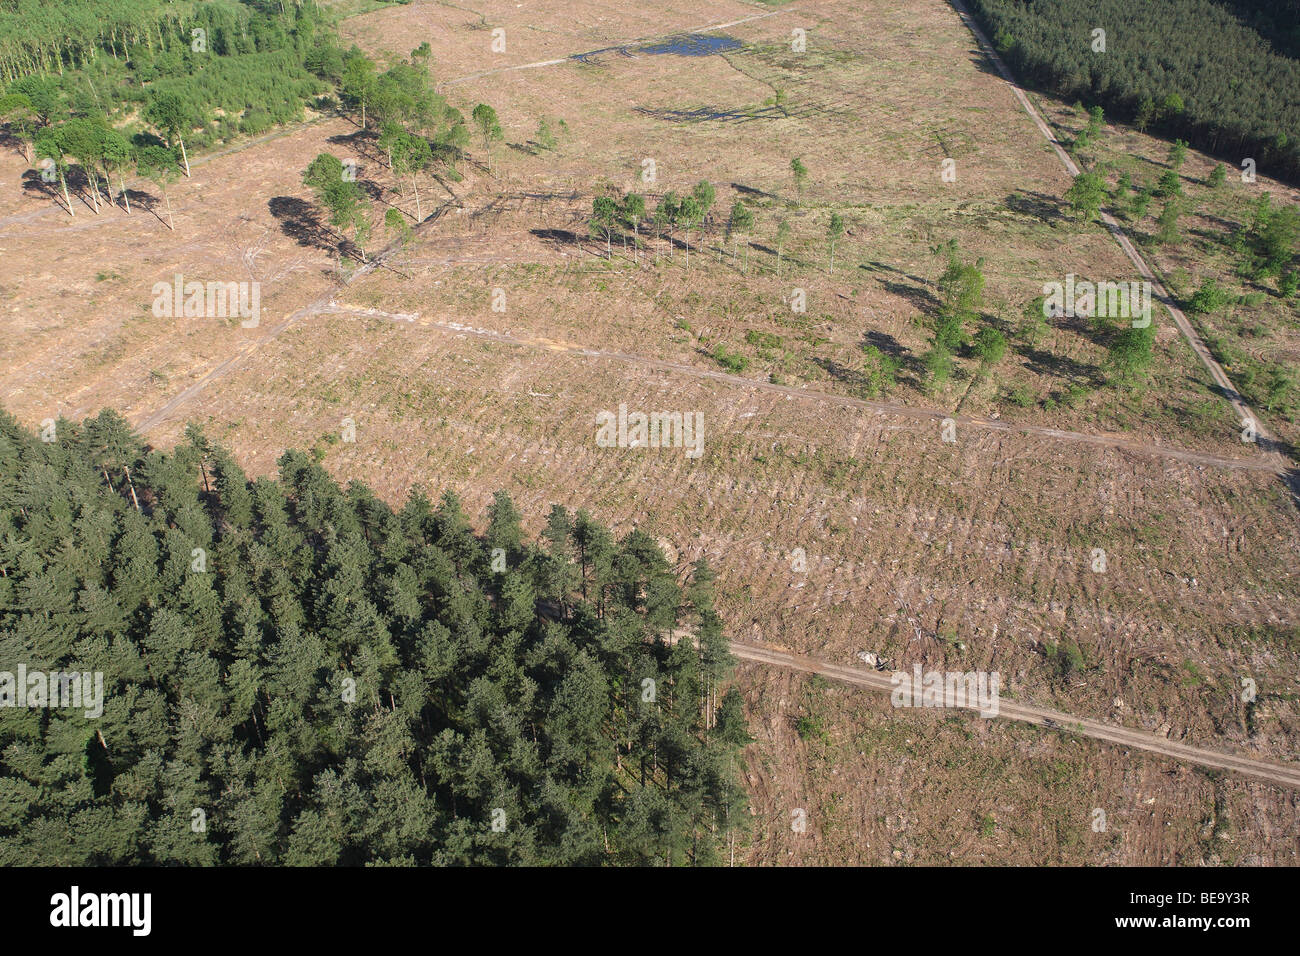 Deforestation of pine forest, forest transformation and development of heather, Belgium - Stock Image